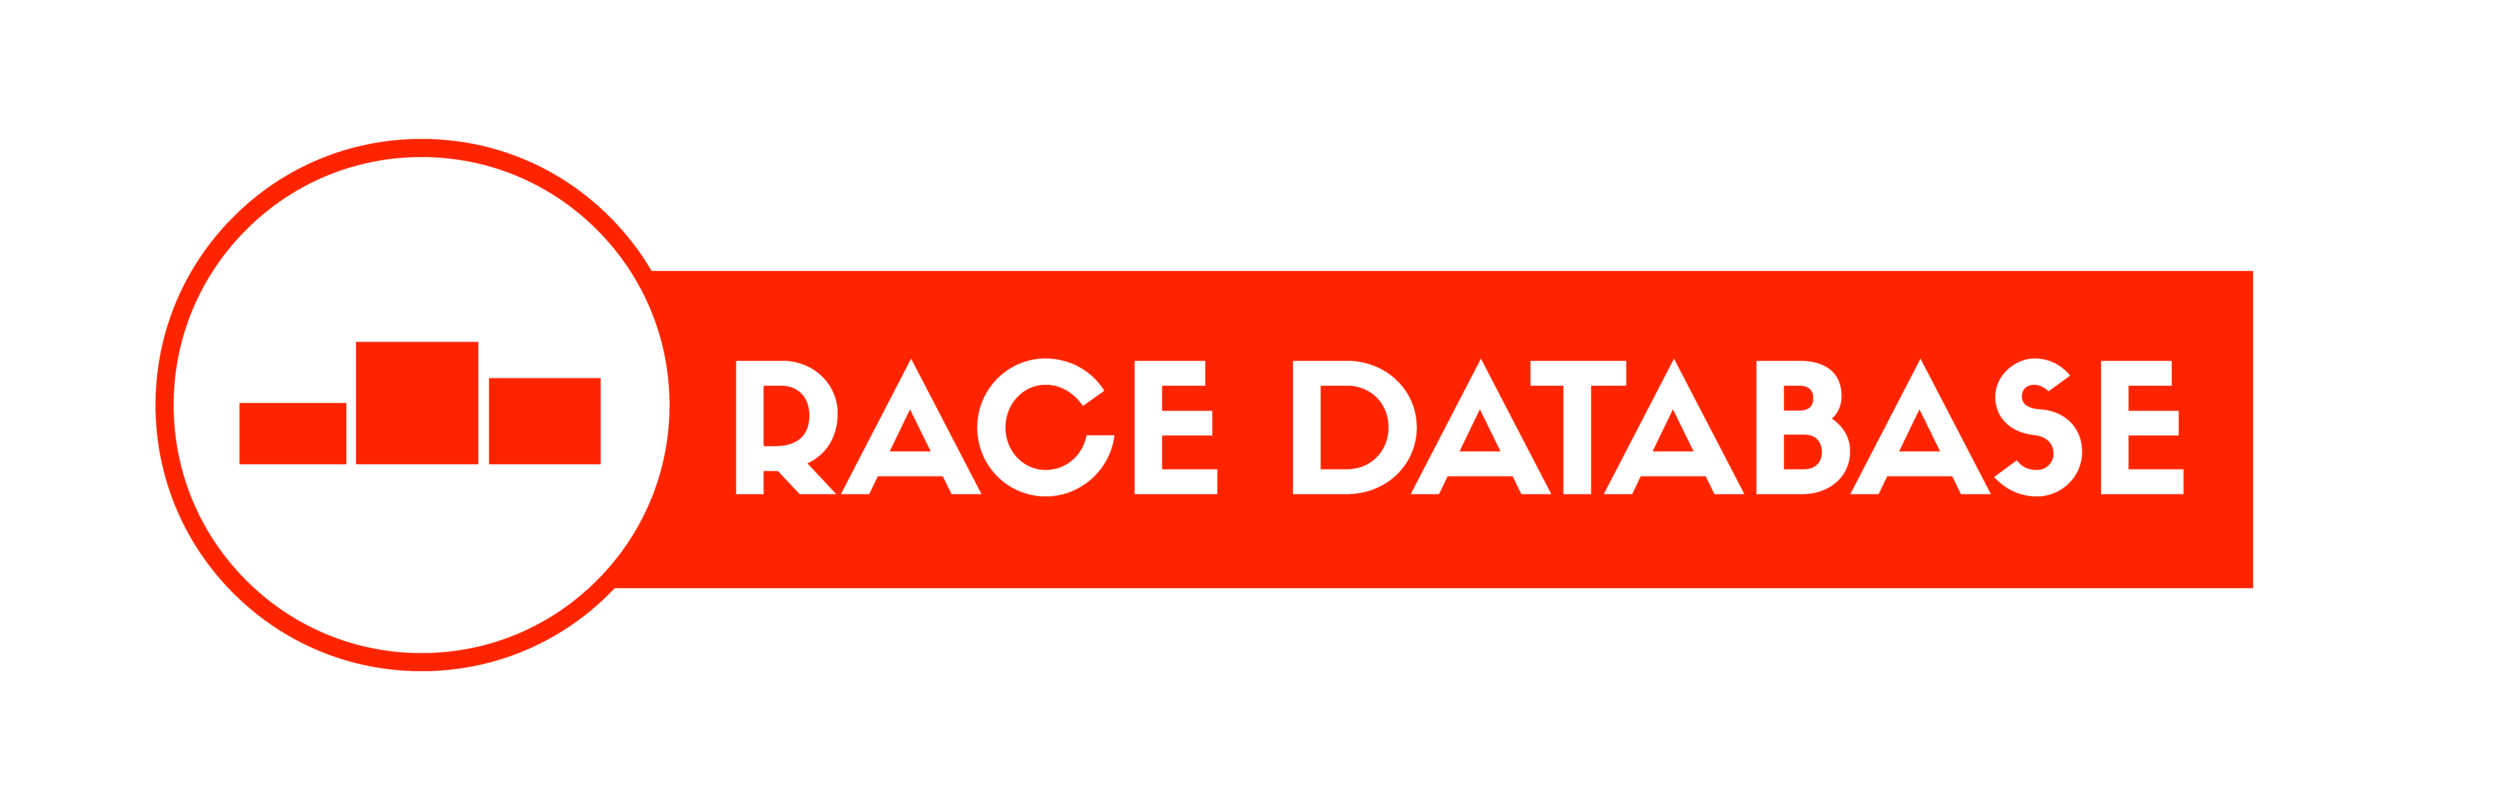 Race-Database-Logo-Red-Long.png